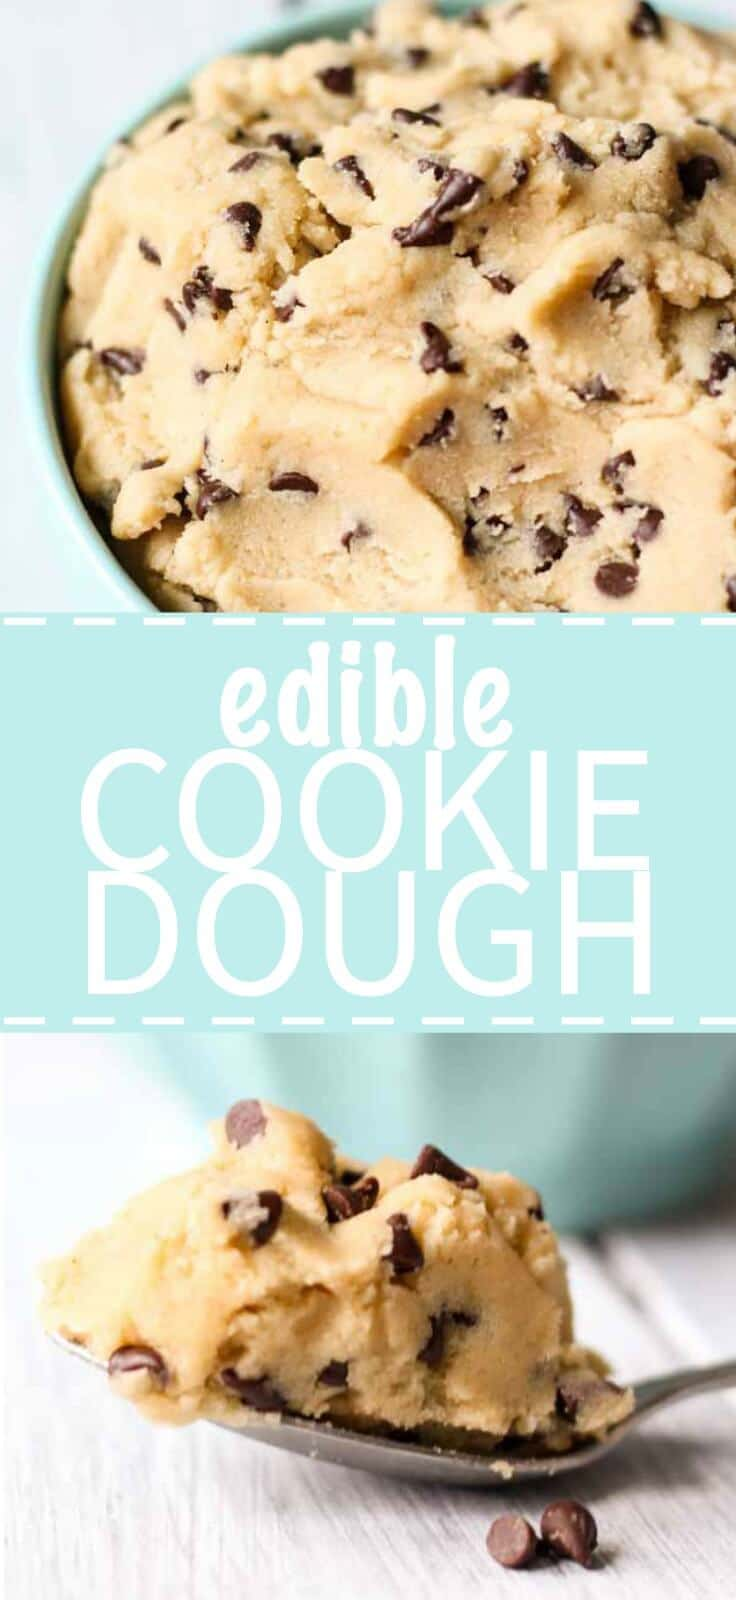 Edible cookie dough is sweet and delicious! It's like eating the real cookie dough, minus the eggs so you can eat it by the spoon full without a care in the world.